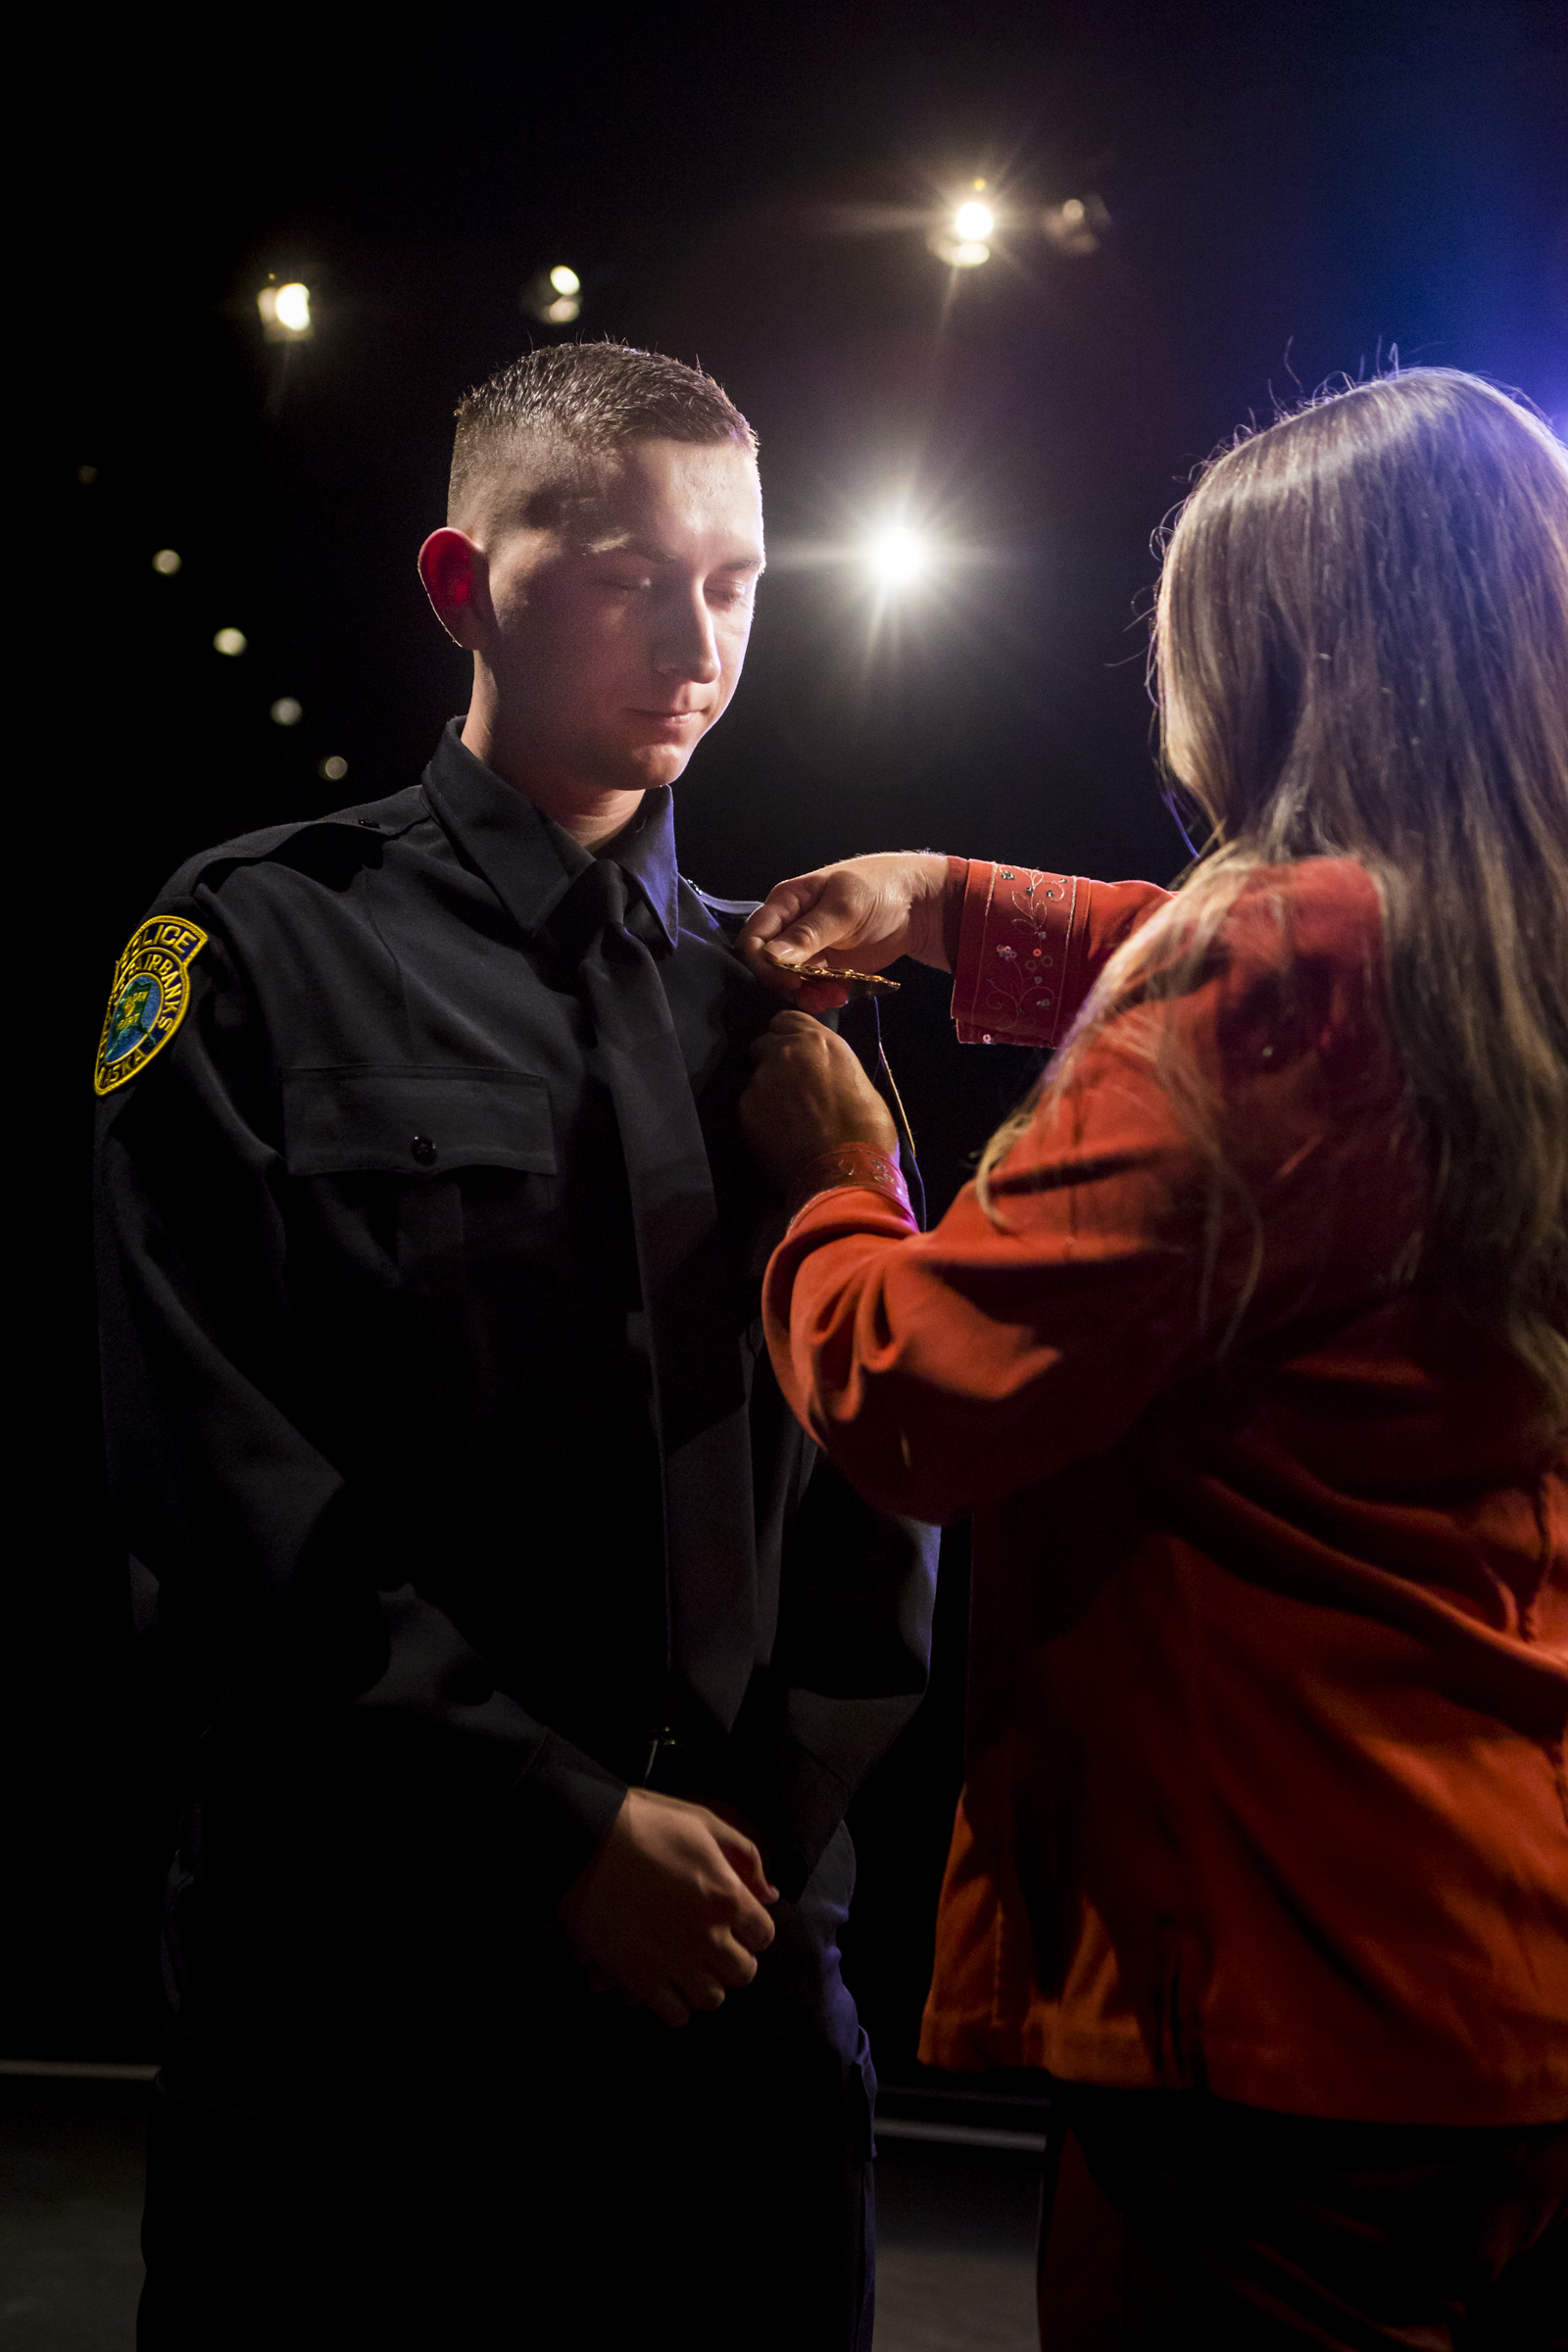 Christian Pergande his badge during the pinning ceremony at the Community and Technical College Police Academy graduation on Friday, October 12th, 2018.